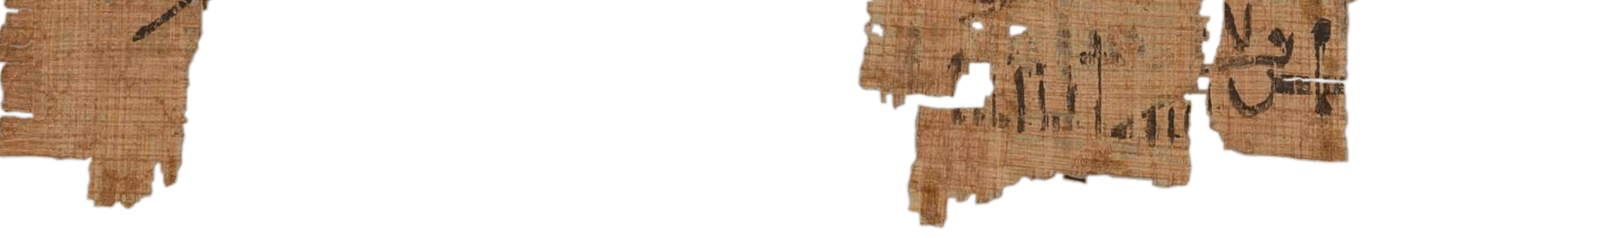 the Turin king list 3.25 (photo of the hieratic text)